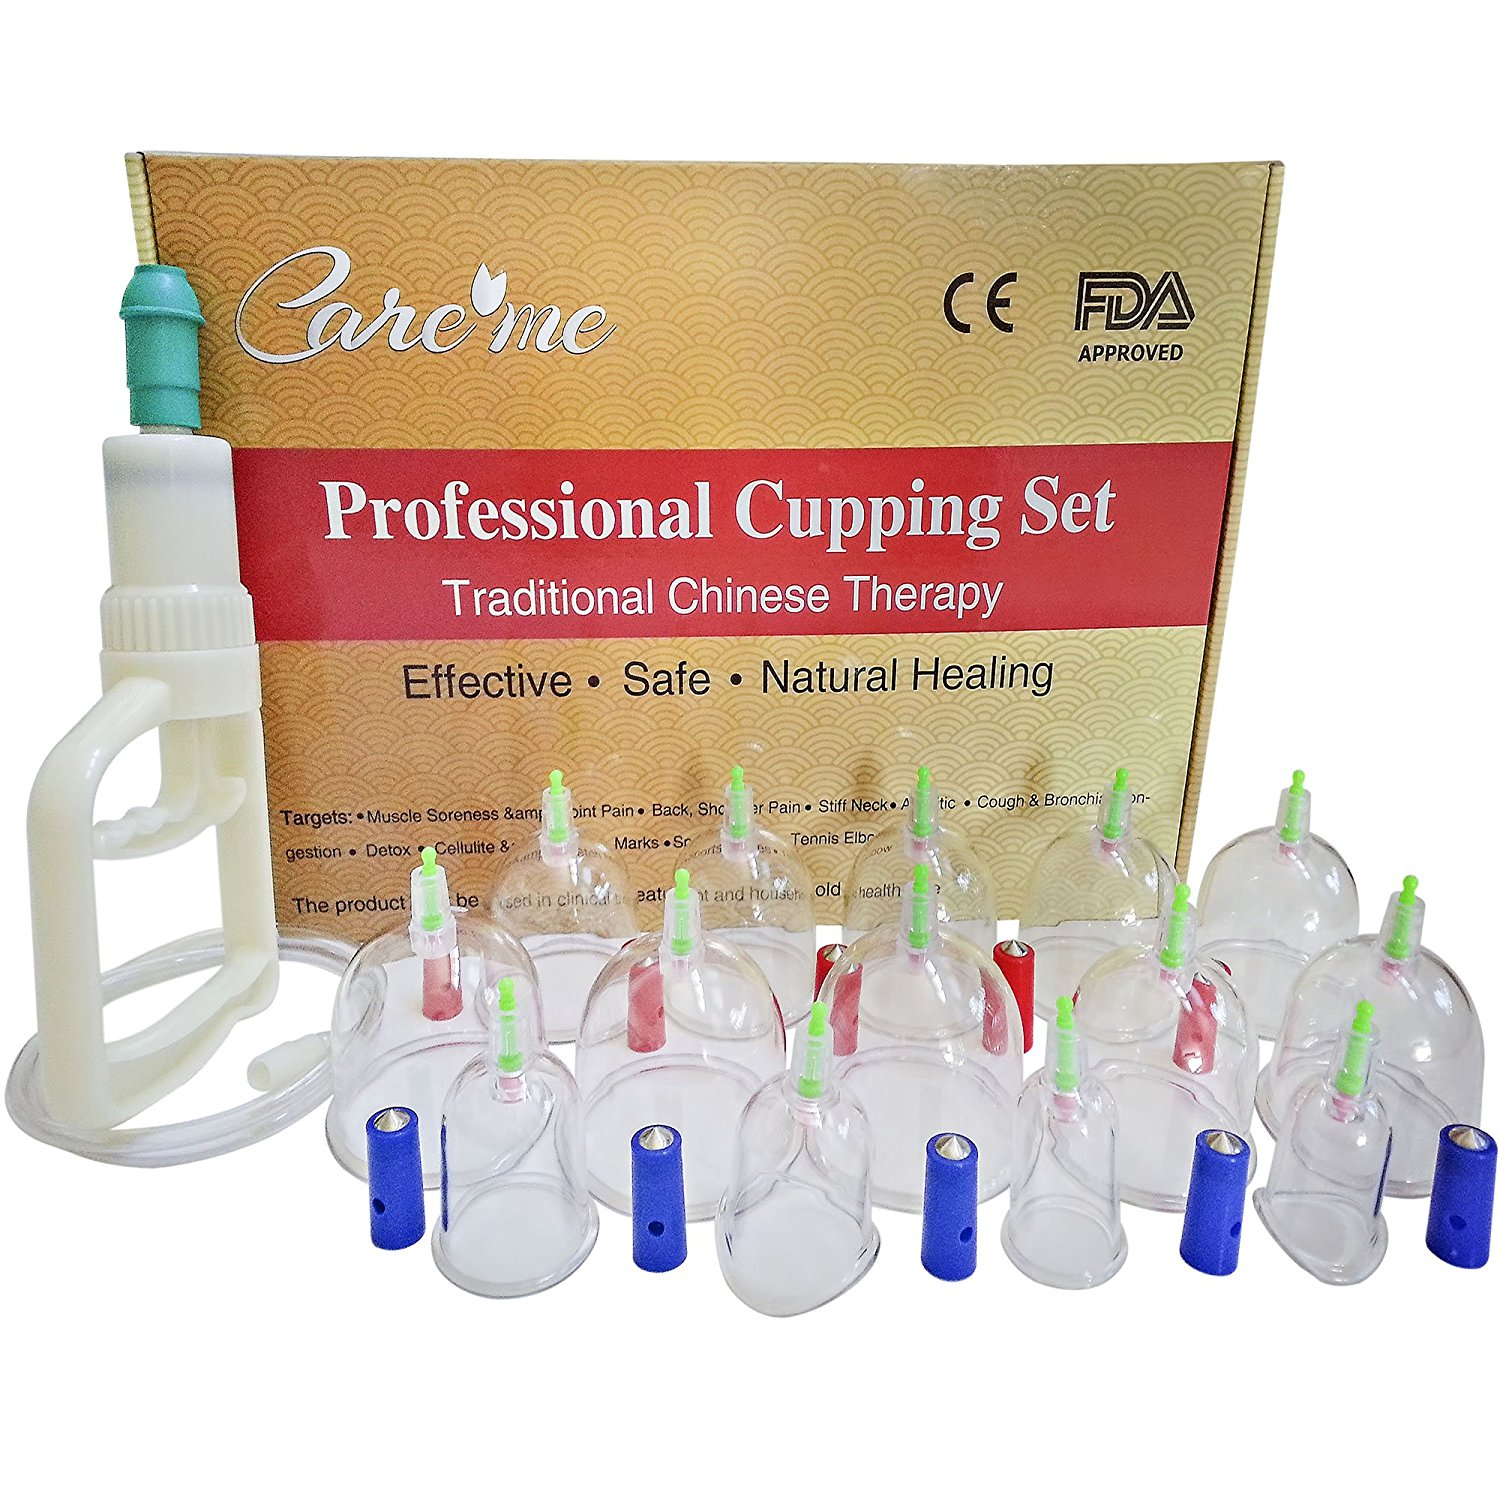 Professional Chinese Acupuncture Cupping Therapy Set -Medical Grade 14 Cups with Guaranteed 5-yr Life Span -For Body Massage, Physical Therapy, Pain Relief - Free Extension Tube & English Manual